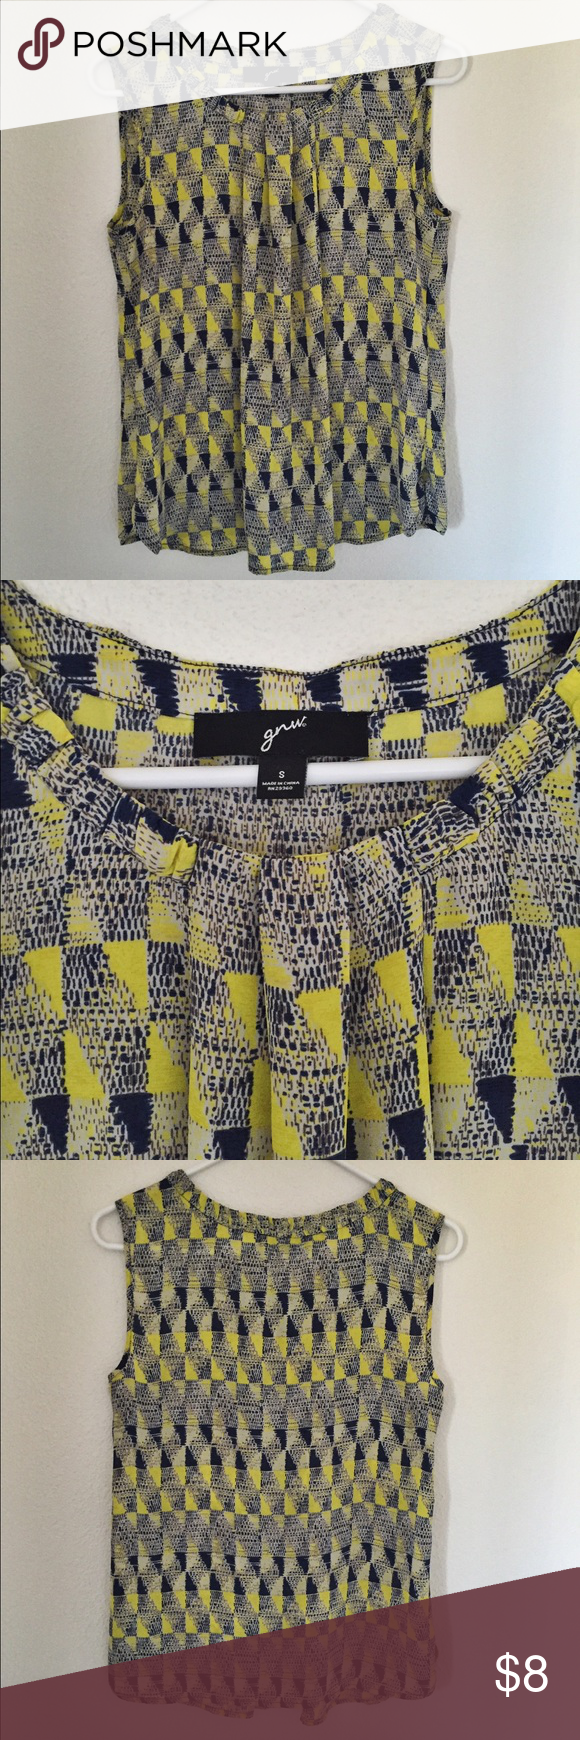 GNW women's blue and yellow tank top, Size small I've only worn this tank top a couple of times.  I wore it with a blue infinity scarf. It a very cute, comfy, and flowy top. Perfect for spring or summer. Great North West Tops Tank Tops